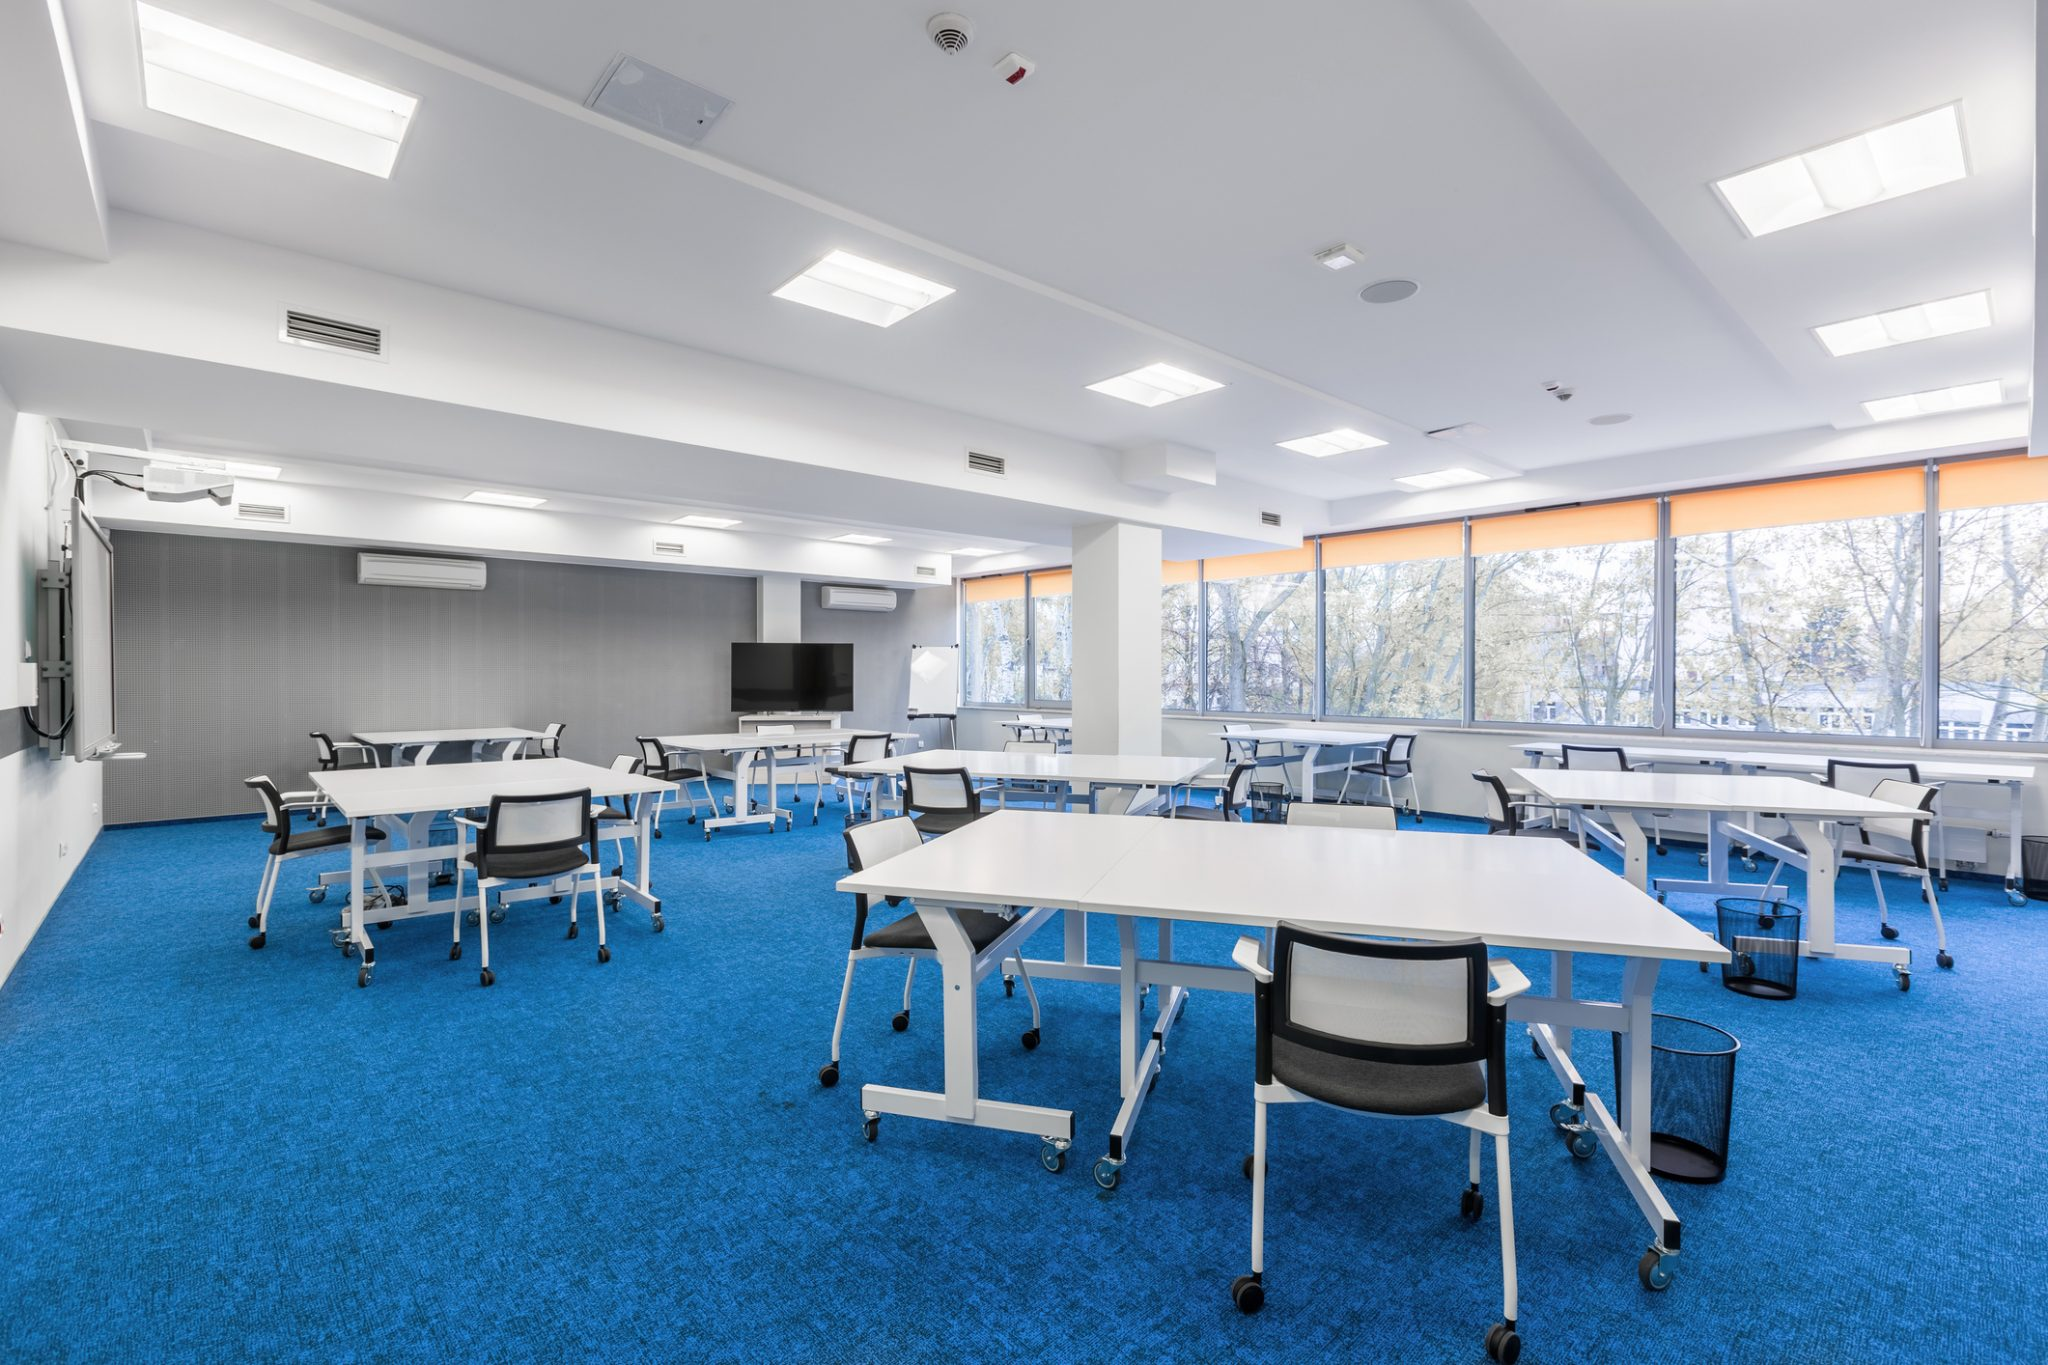 Modular Classroom Considerations - Blue Carpet, White Chairs And Desks